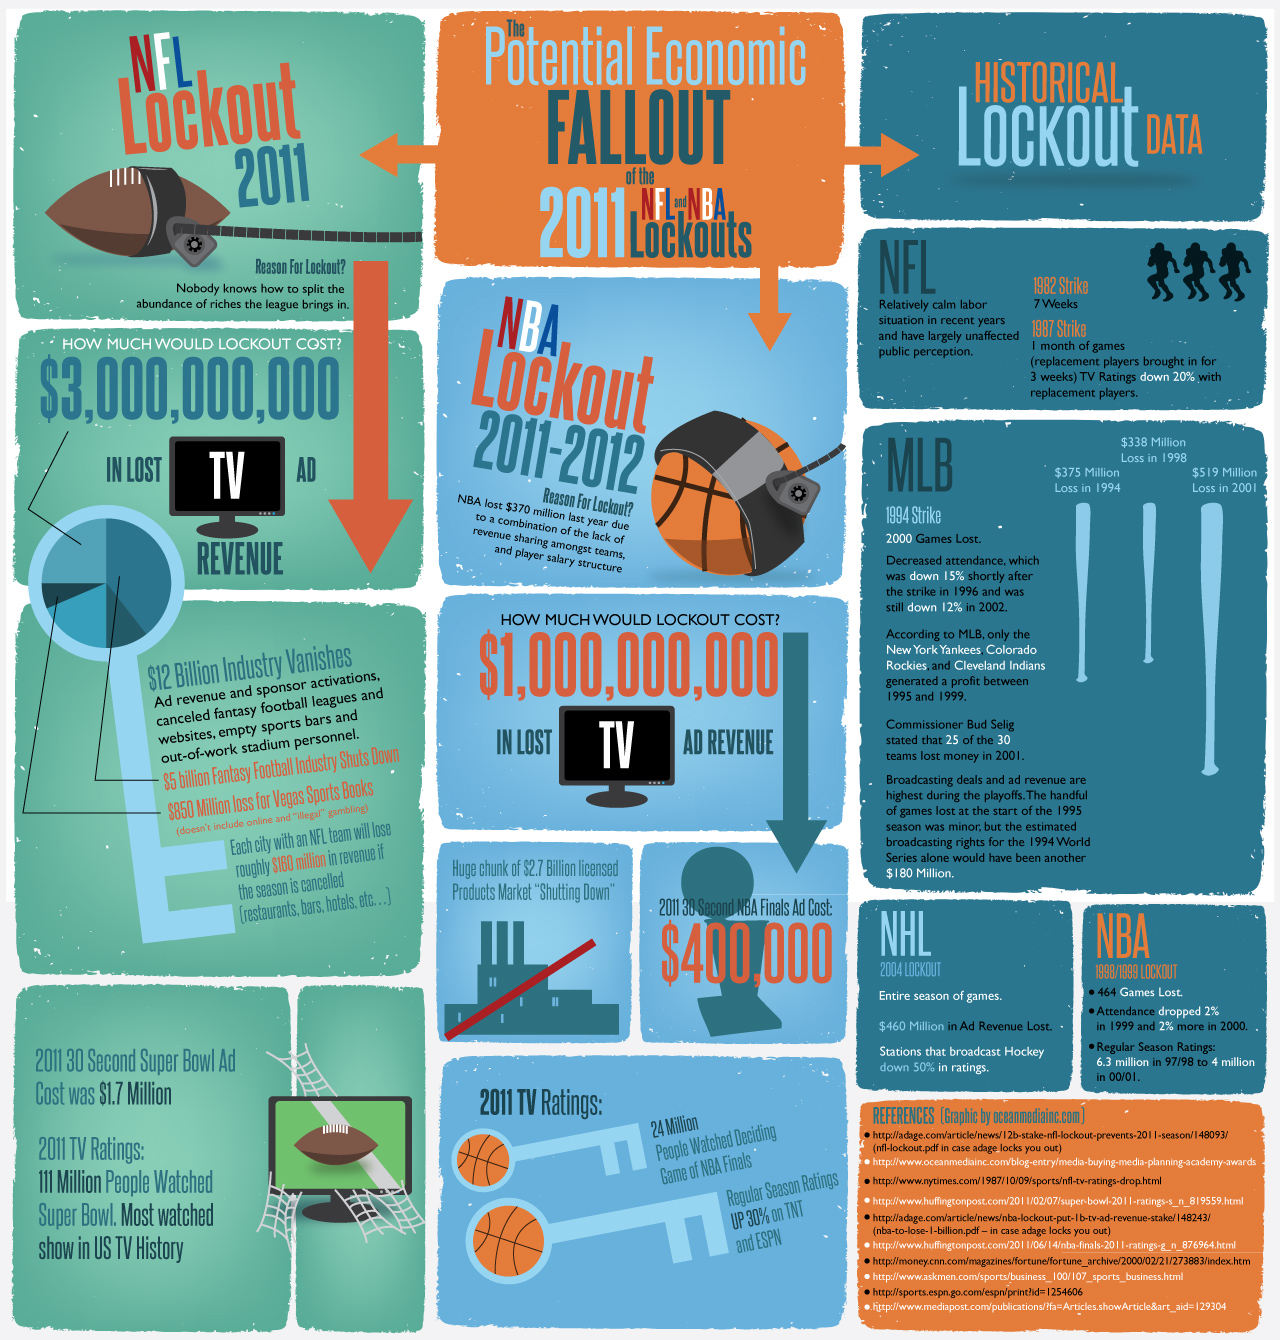 NBA and NFL Lockouts Infographic